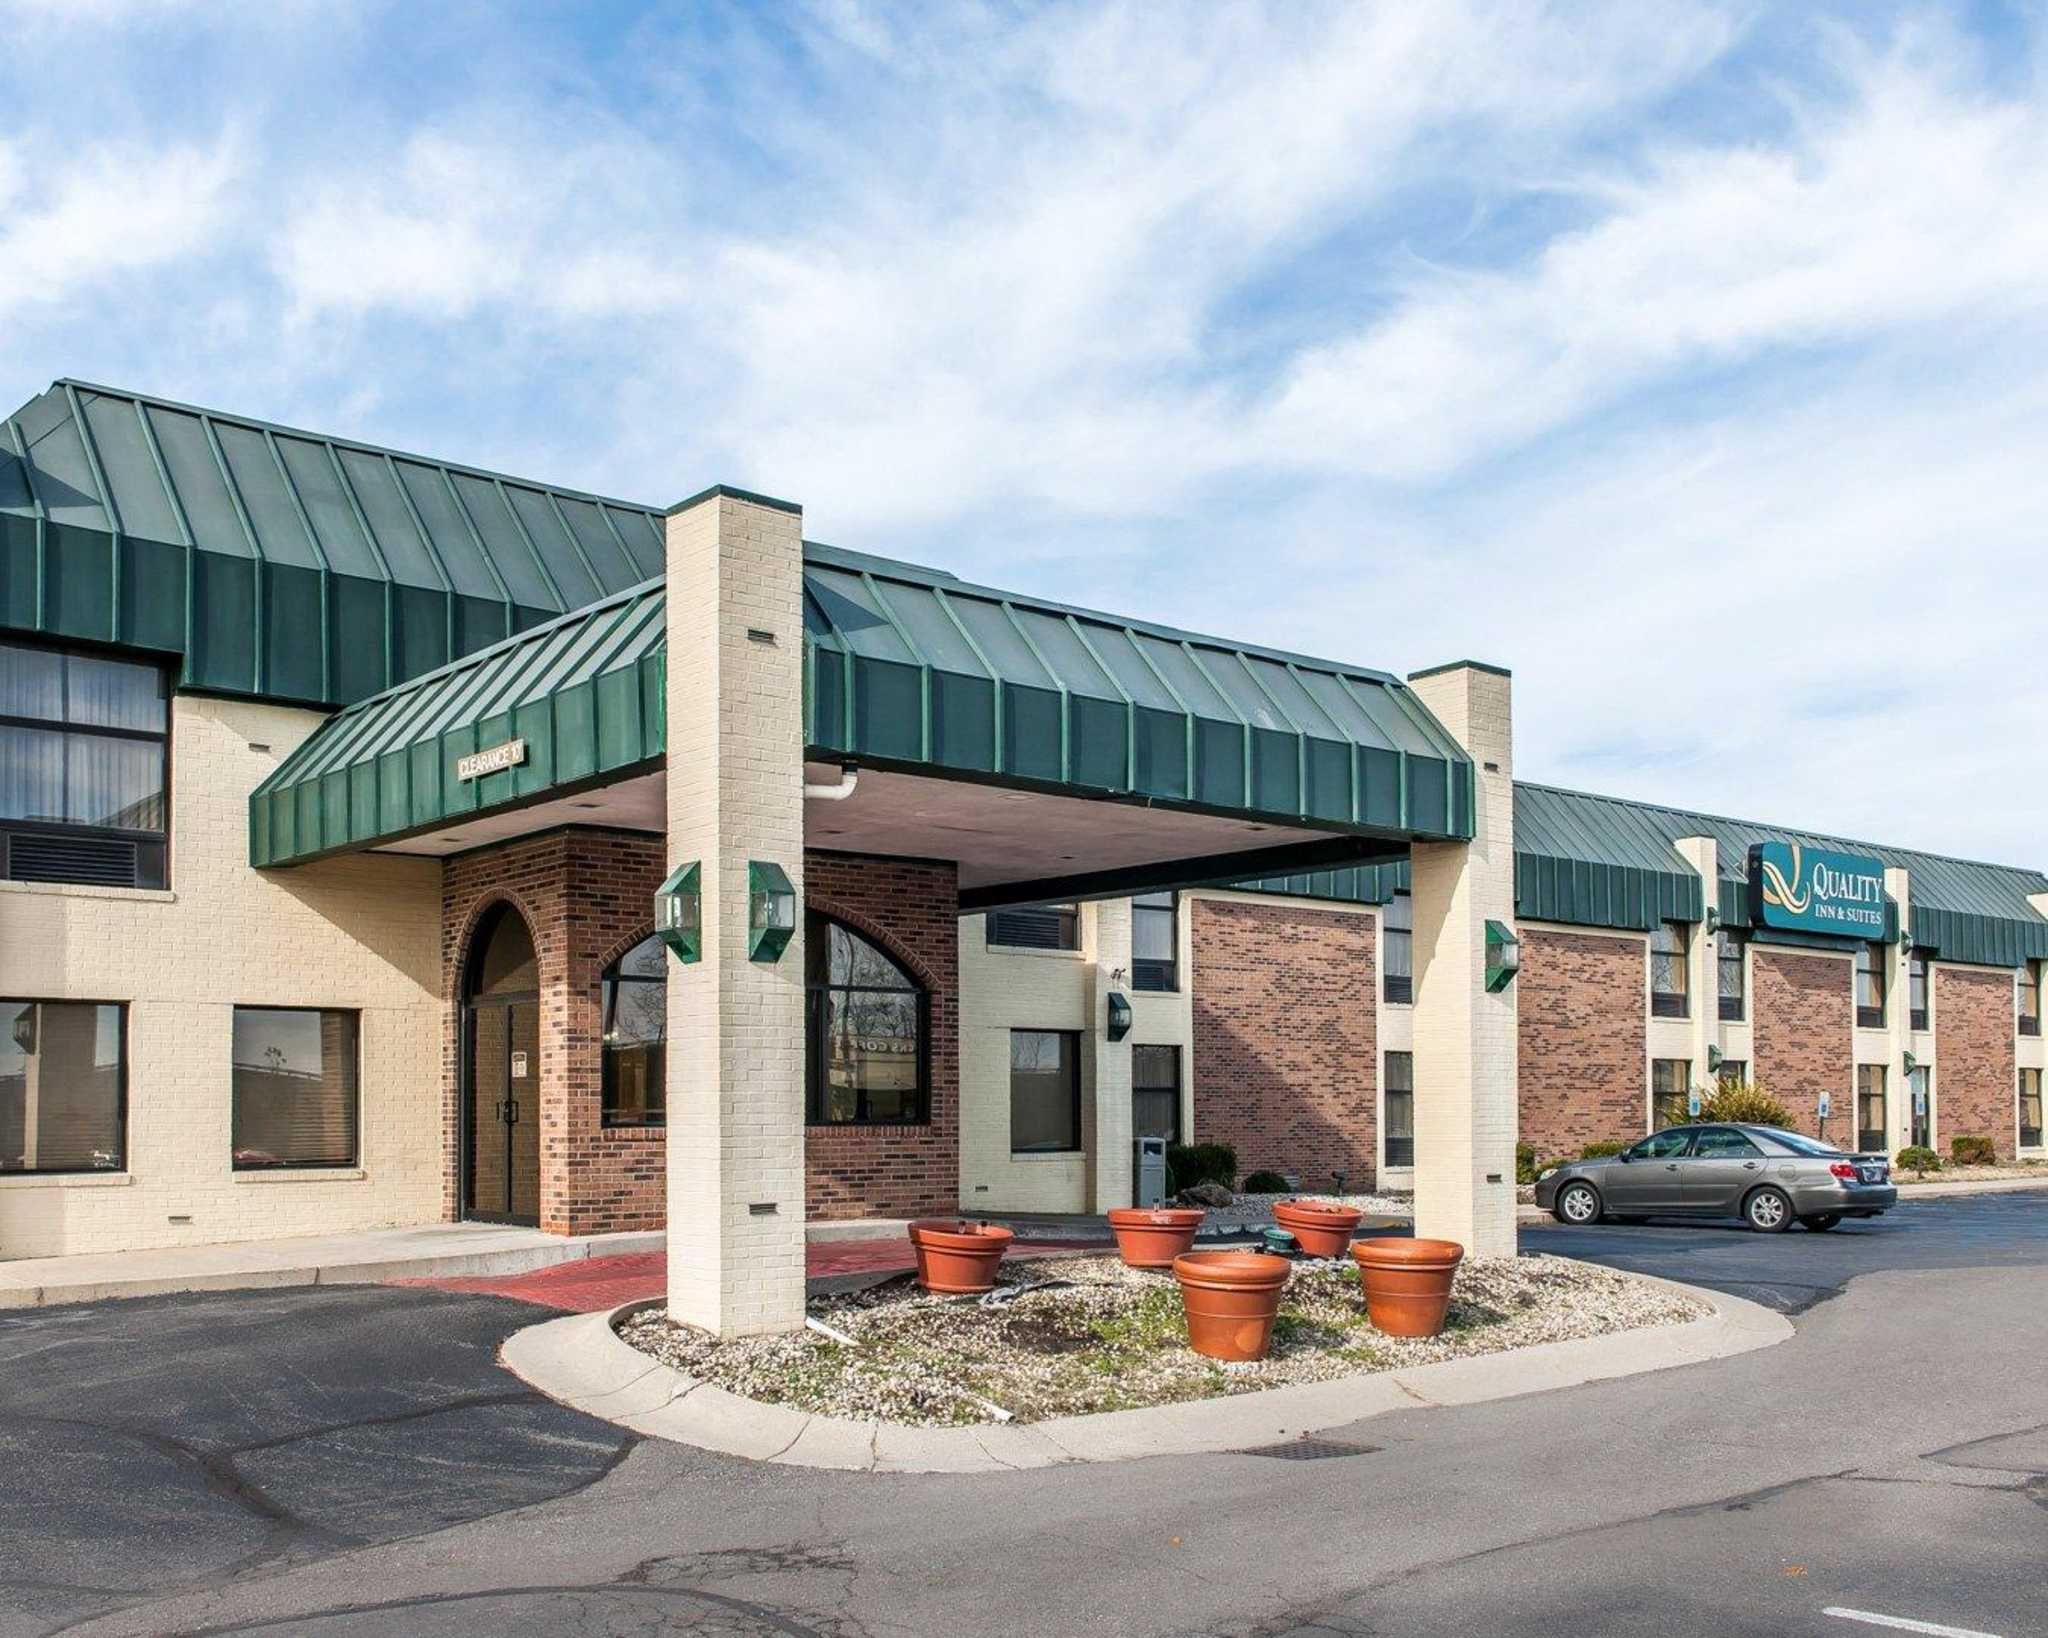 Quality Inn & Suites Shelbyville I-74 image 0